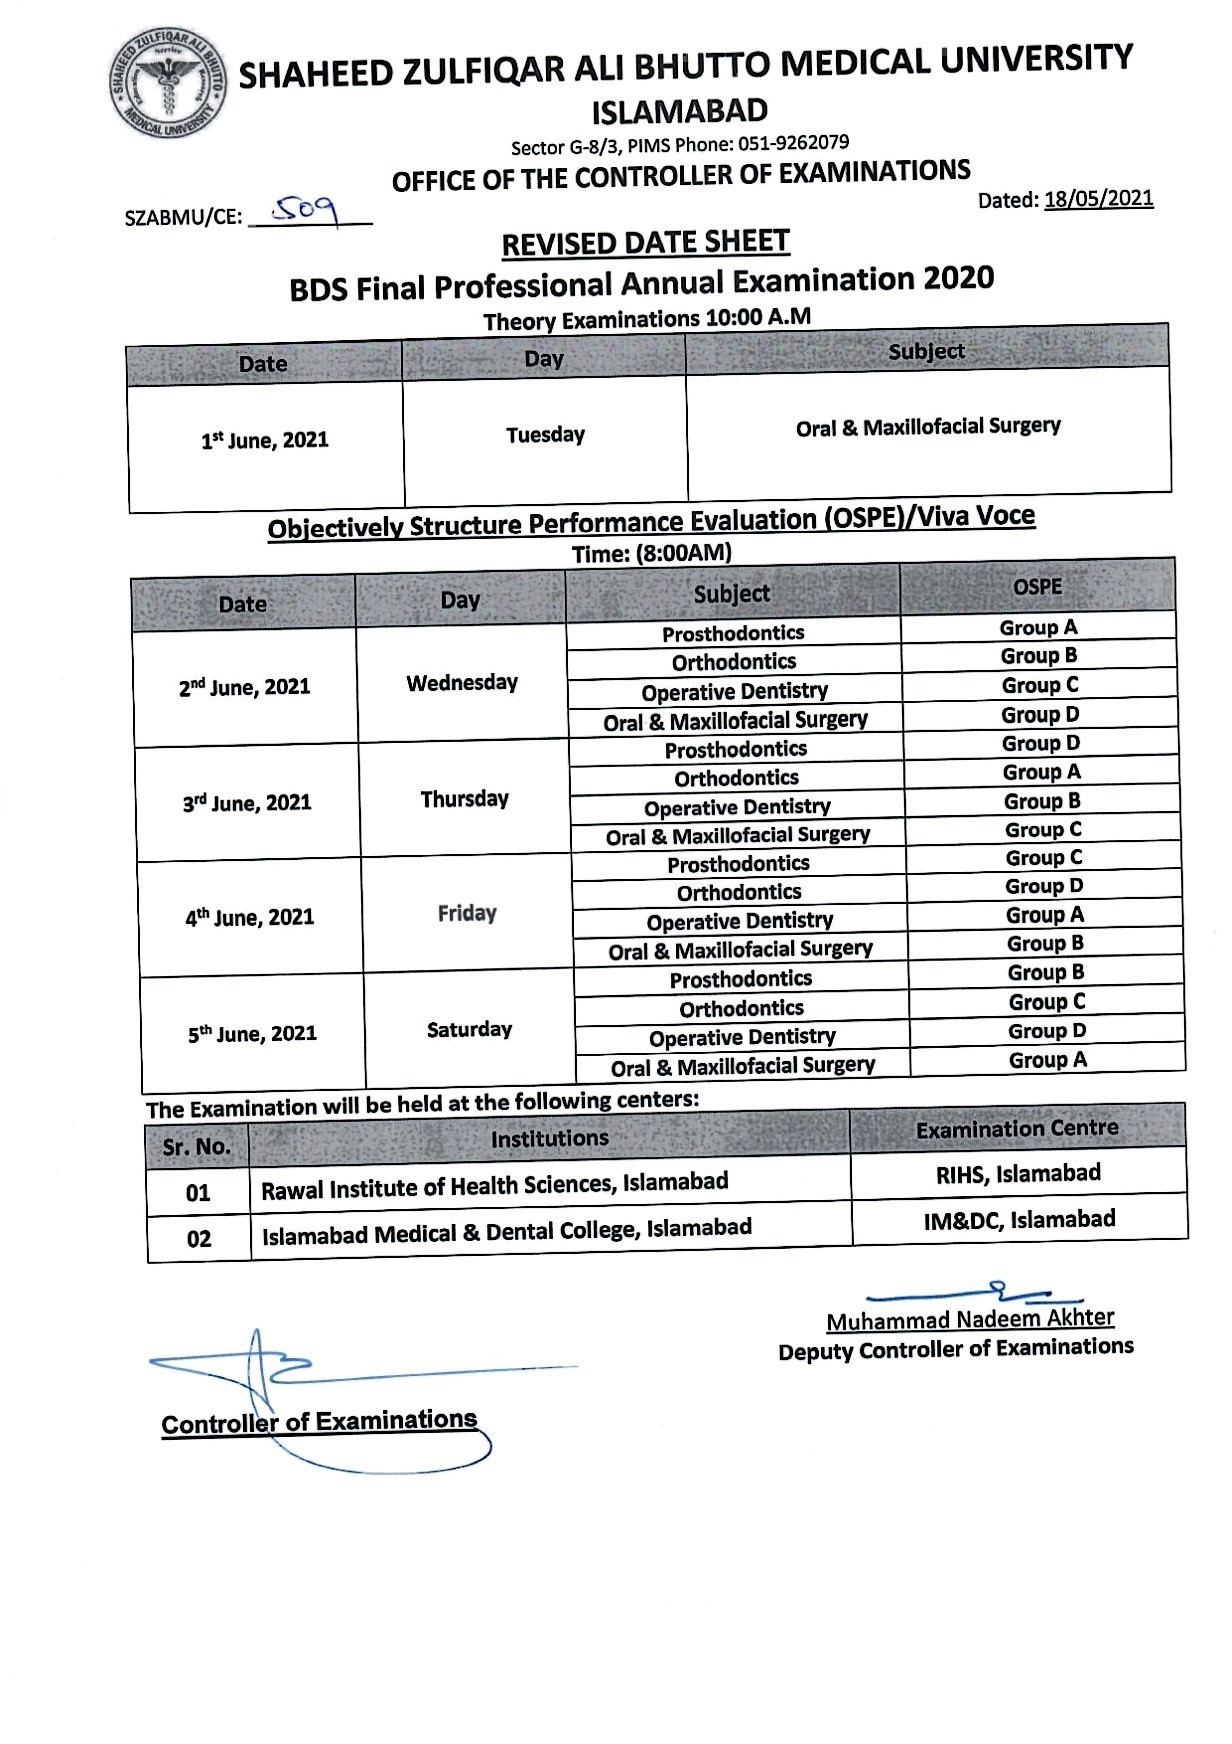 Revised Date Sheet - BDS Final Year Annual Examination 2020